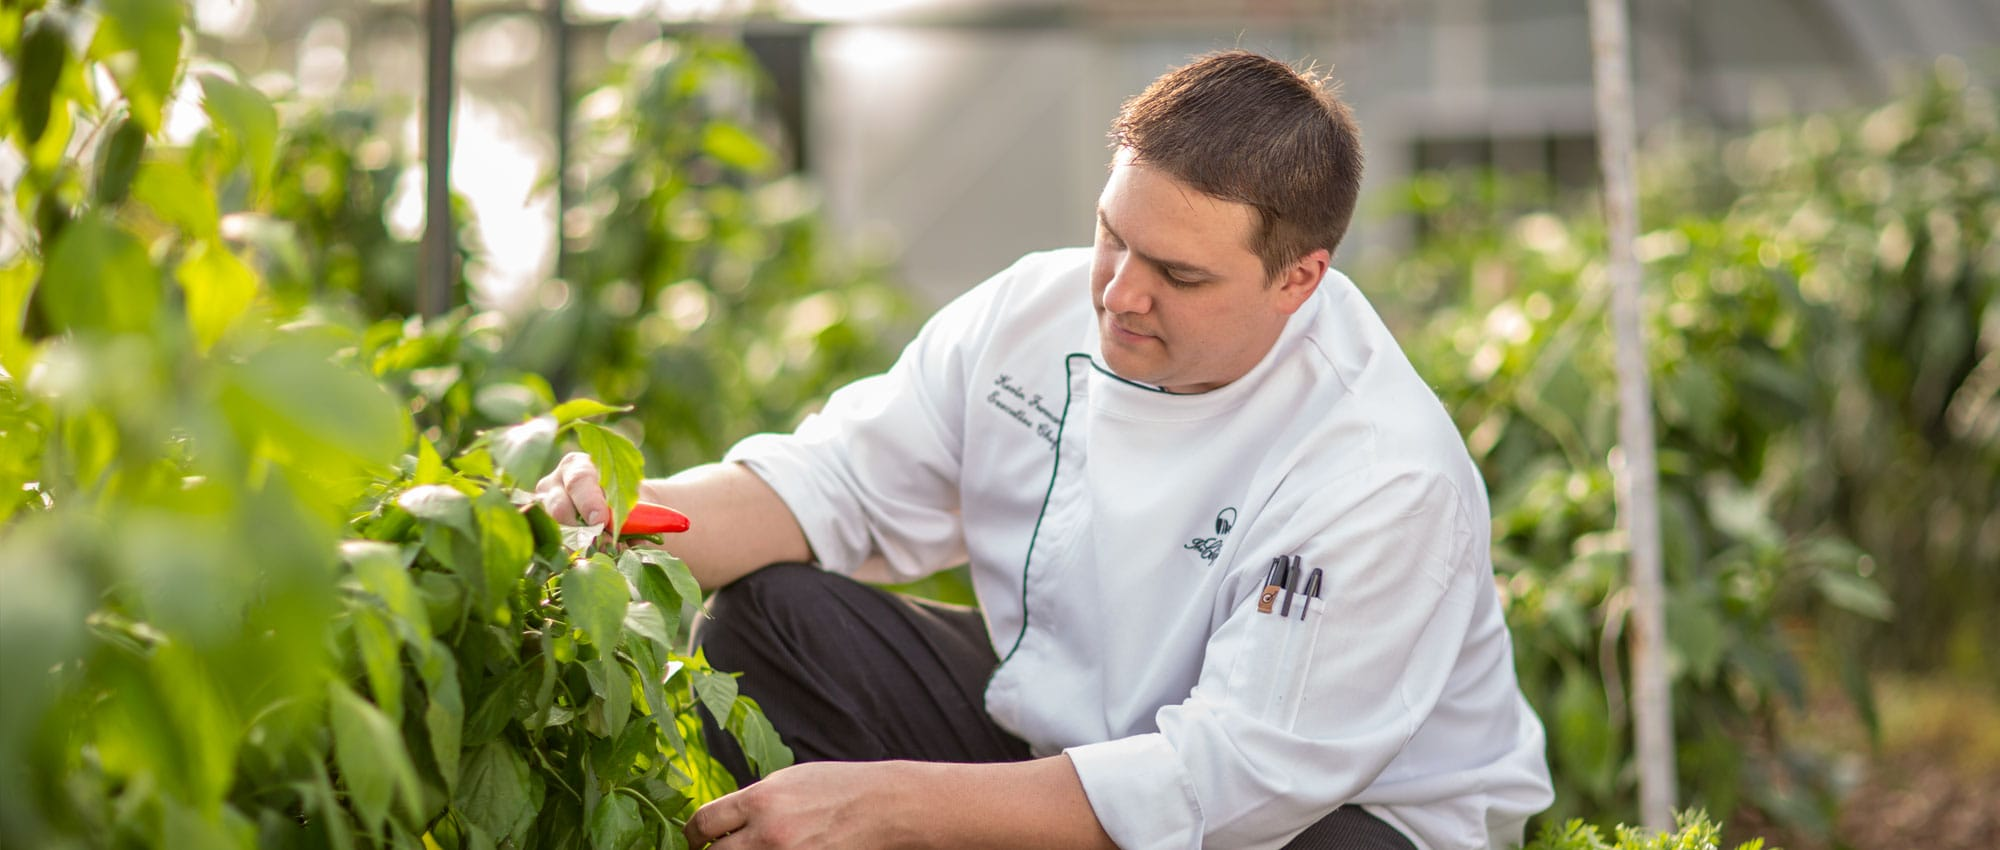 Executive Chef Kevin Furmanek picking peppers in the garden